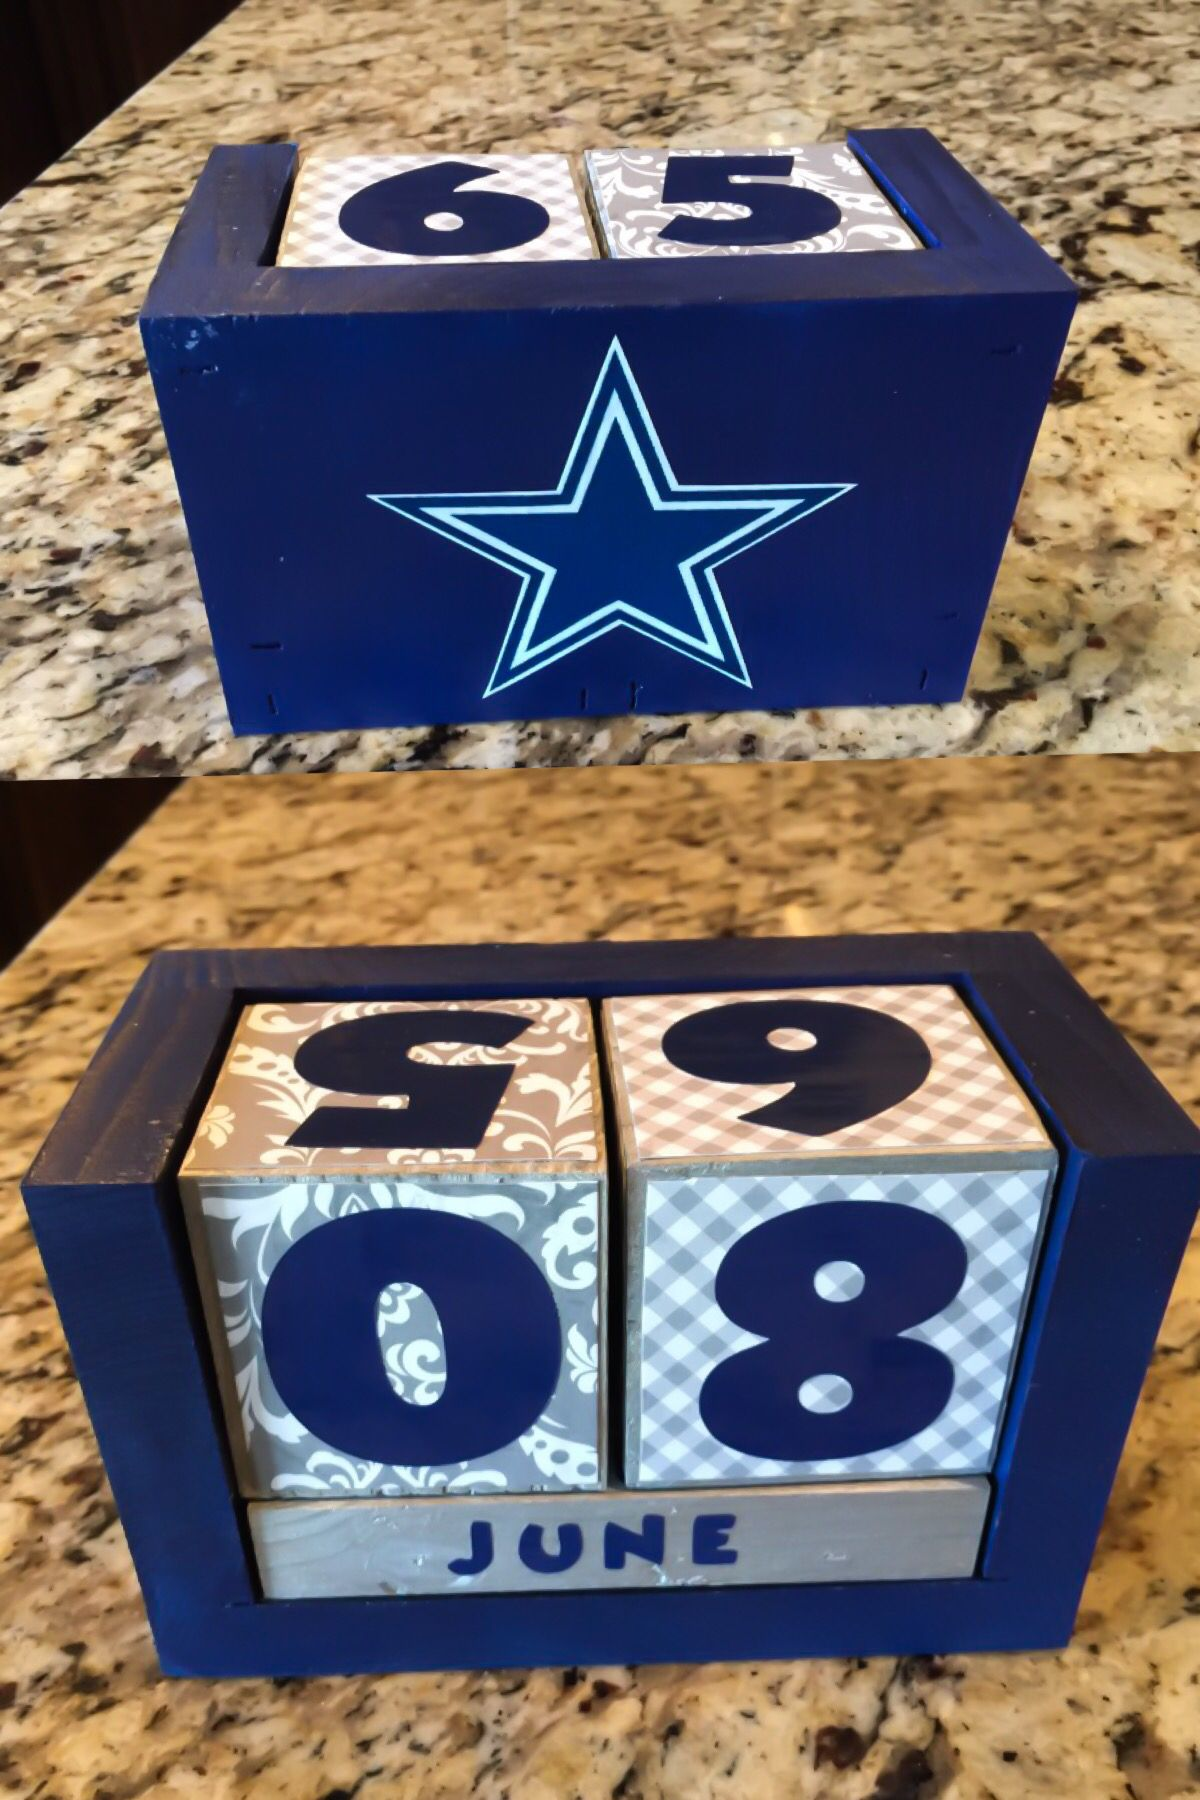 Dallas Cowboys Desk Calendar Blocks Wood Block Crafts Sports Decorations Team Sports Gifts